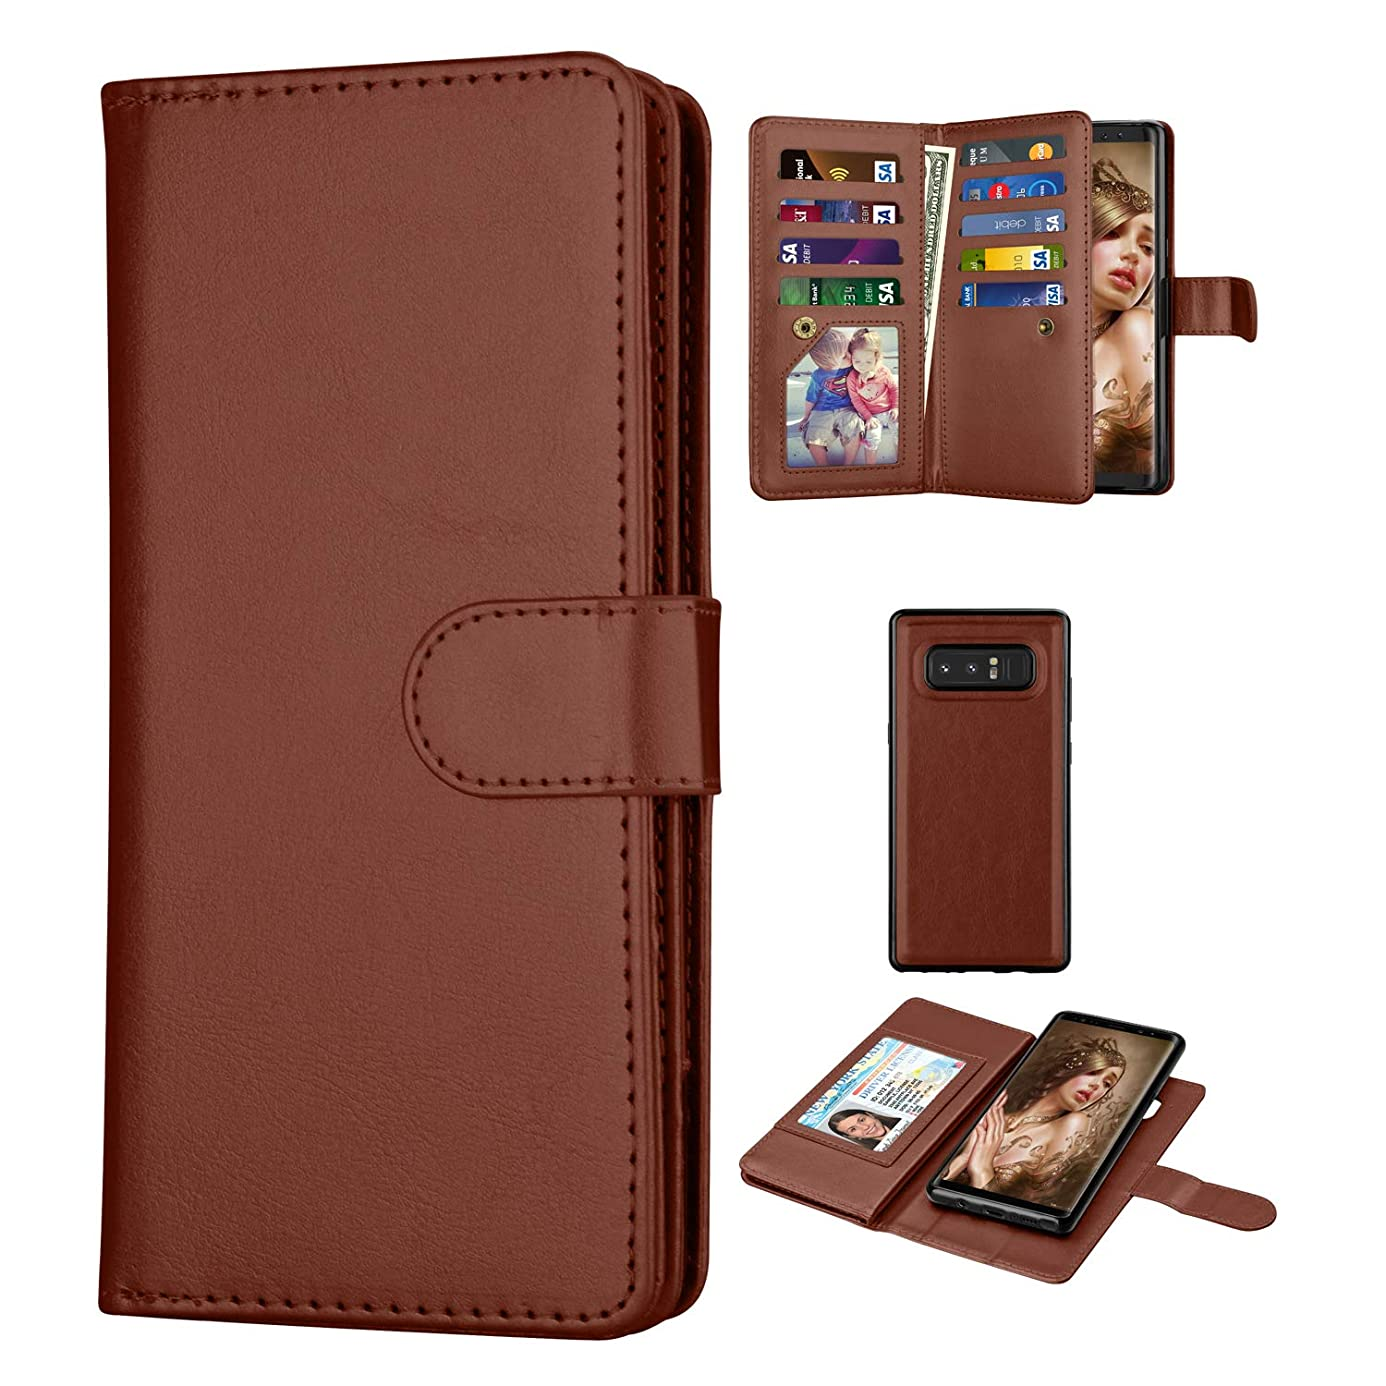 Galaxy Note 8 Case, Tinysaturn [Ypul Series] Wallet Flip Pouch Magnetic Kickstand PU Leather Full Protective with 9 Card Slots [Wrist Strap] Bumper Cover Case for Samsung Galaxy Note 8 (Brown) icv1562449